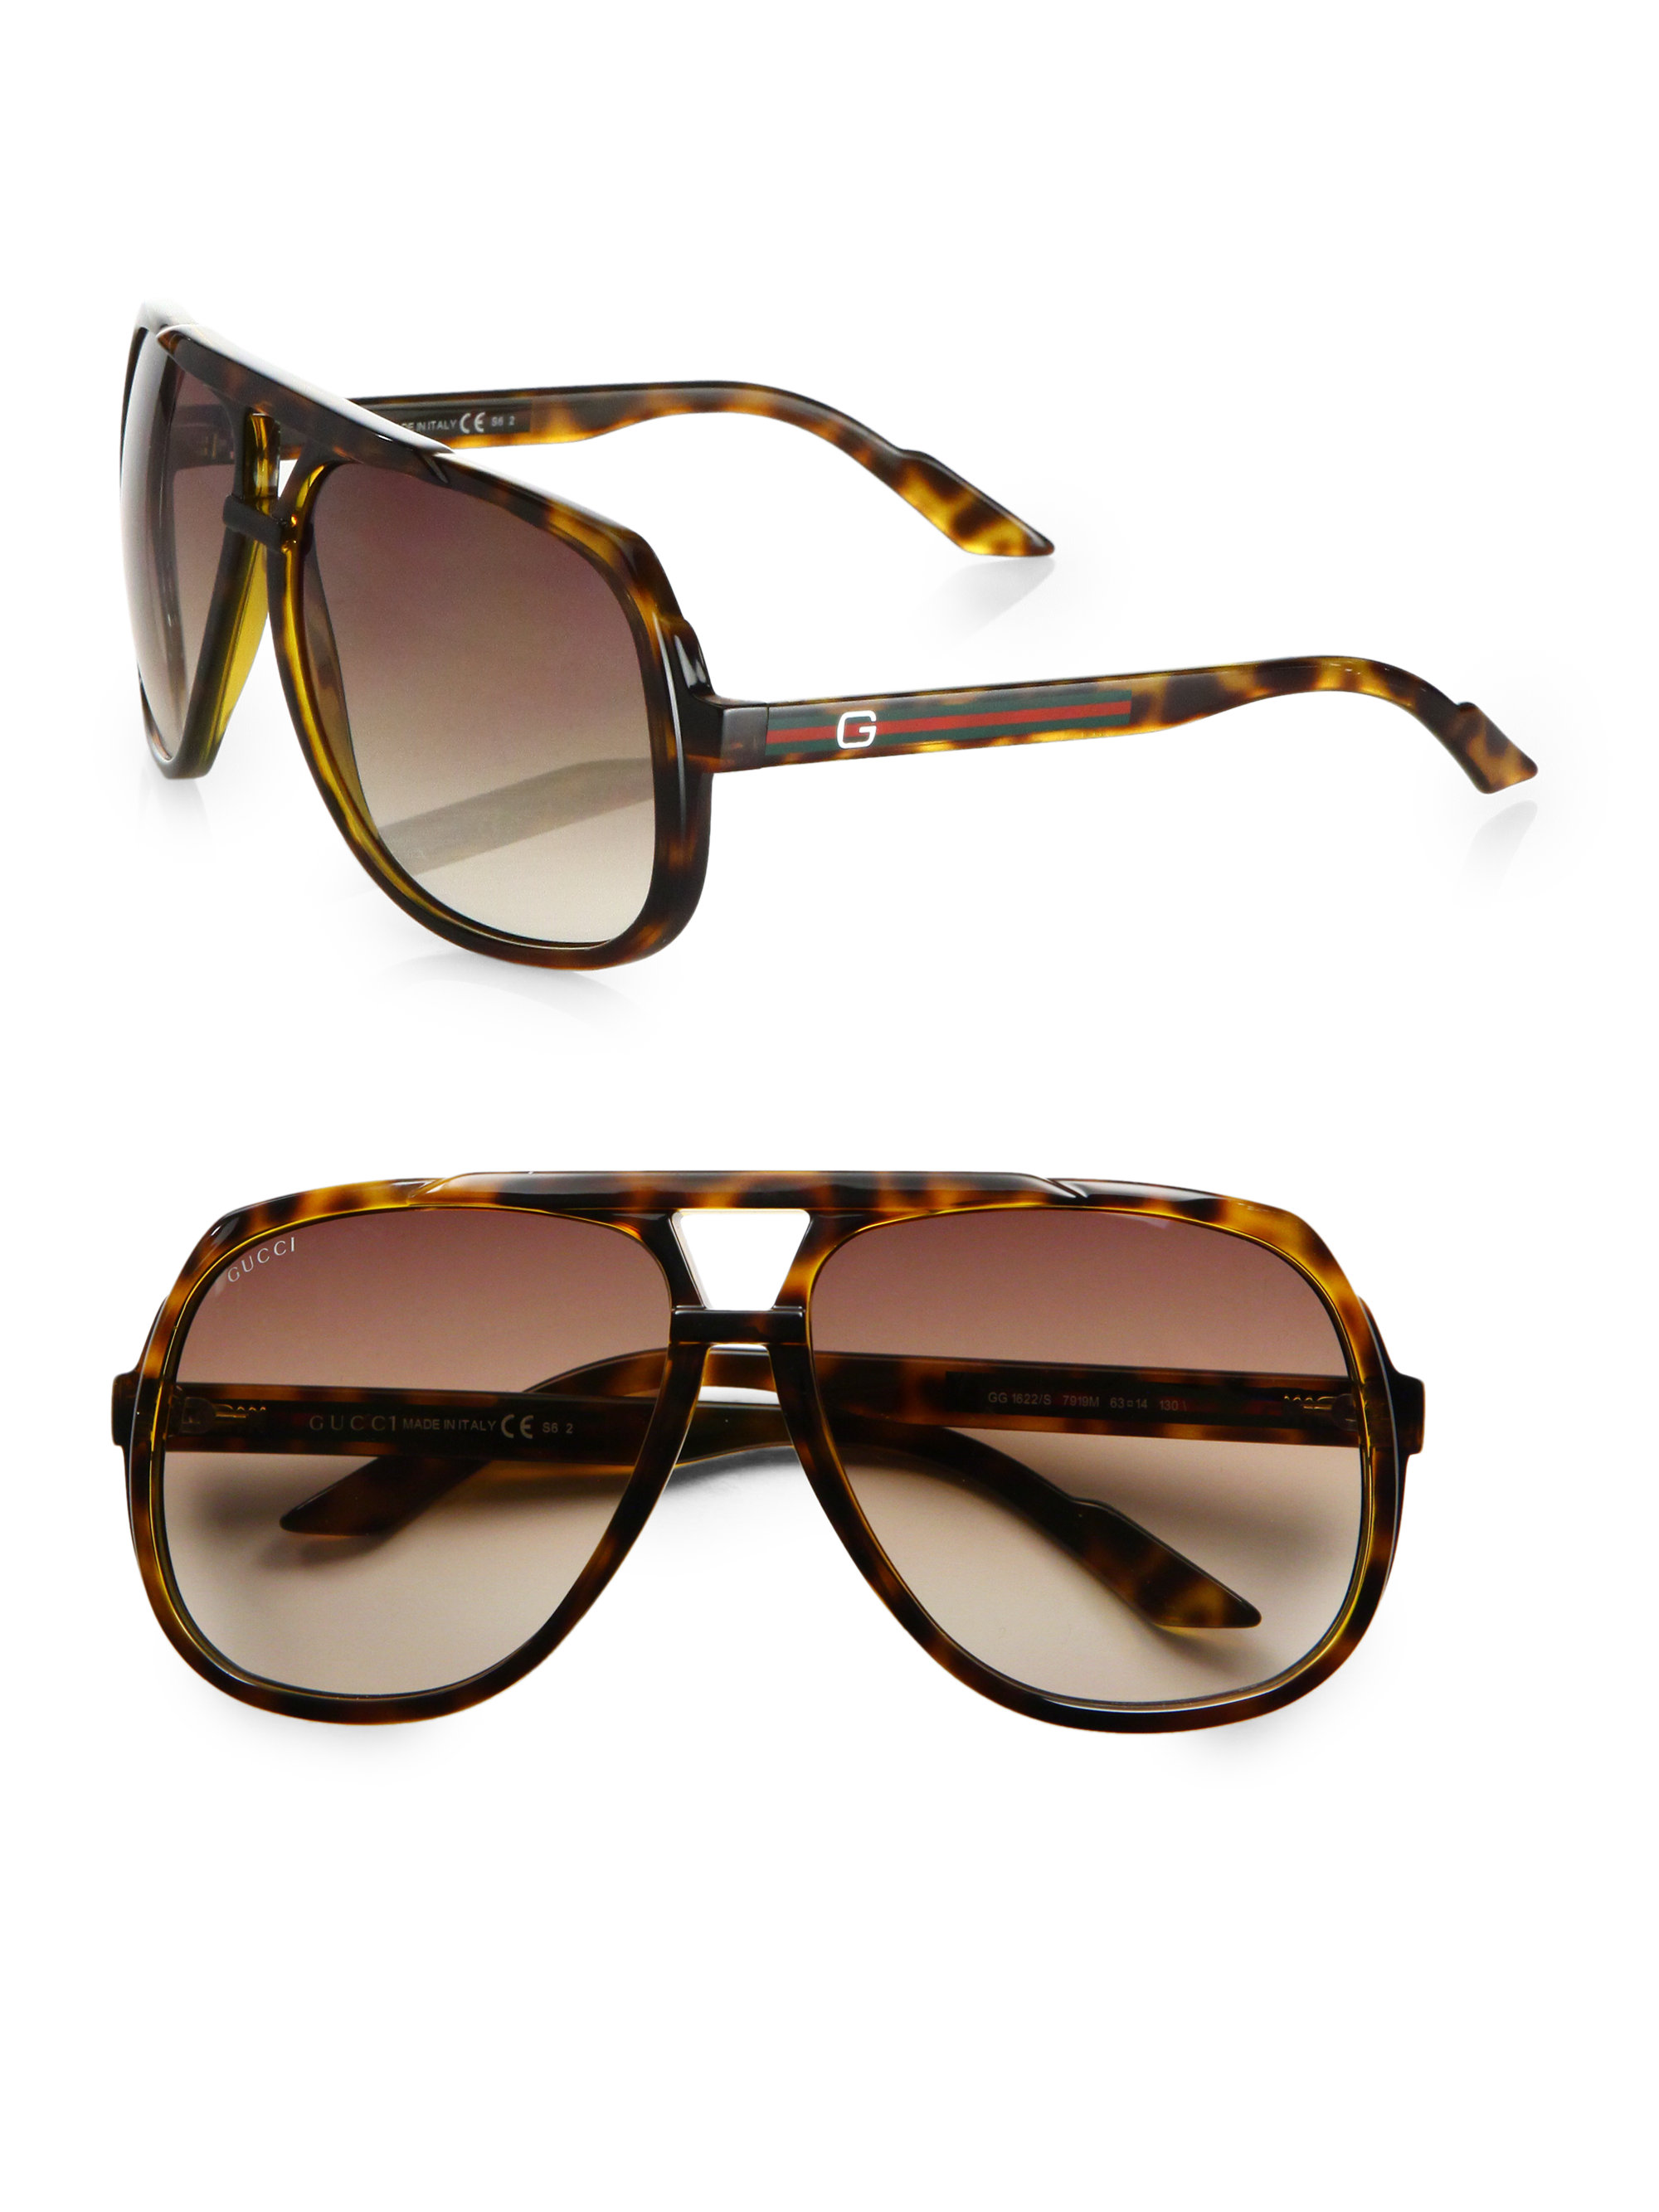 888d28290ab Lyst - Gucci Plastic Aviator Sunglasses in Brown for Men